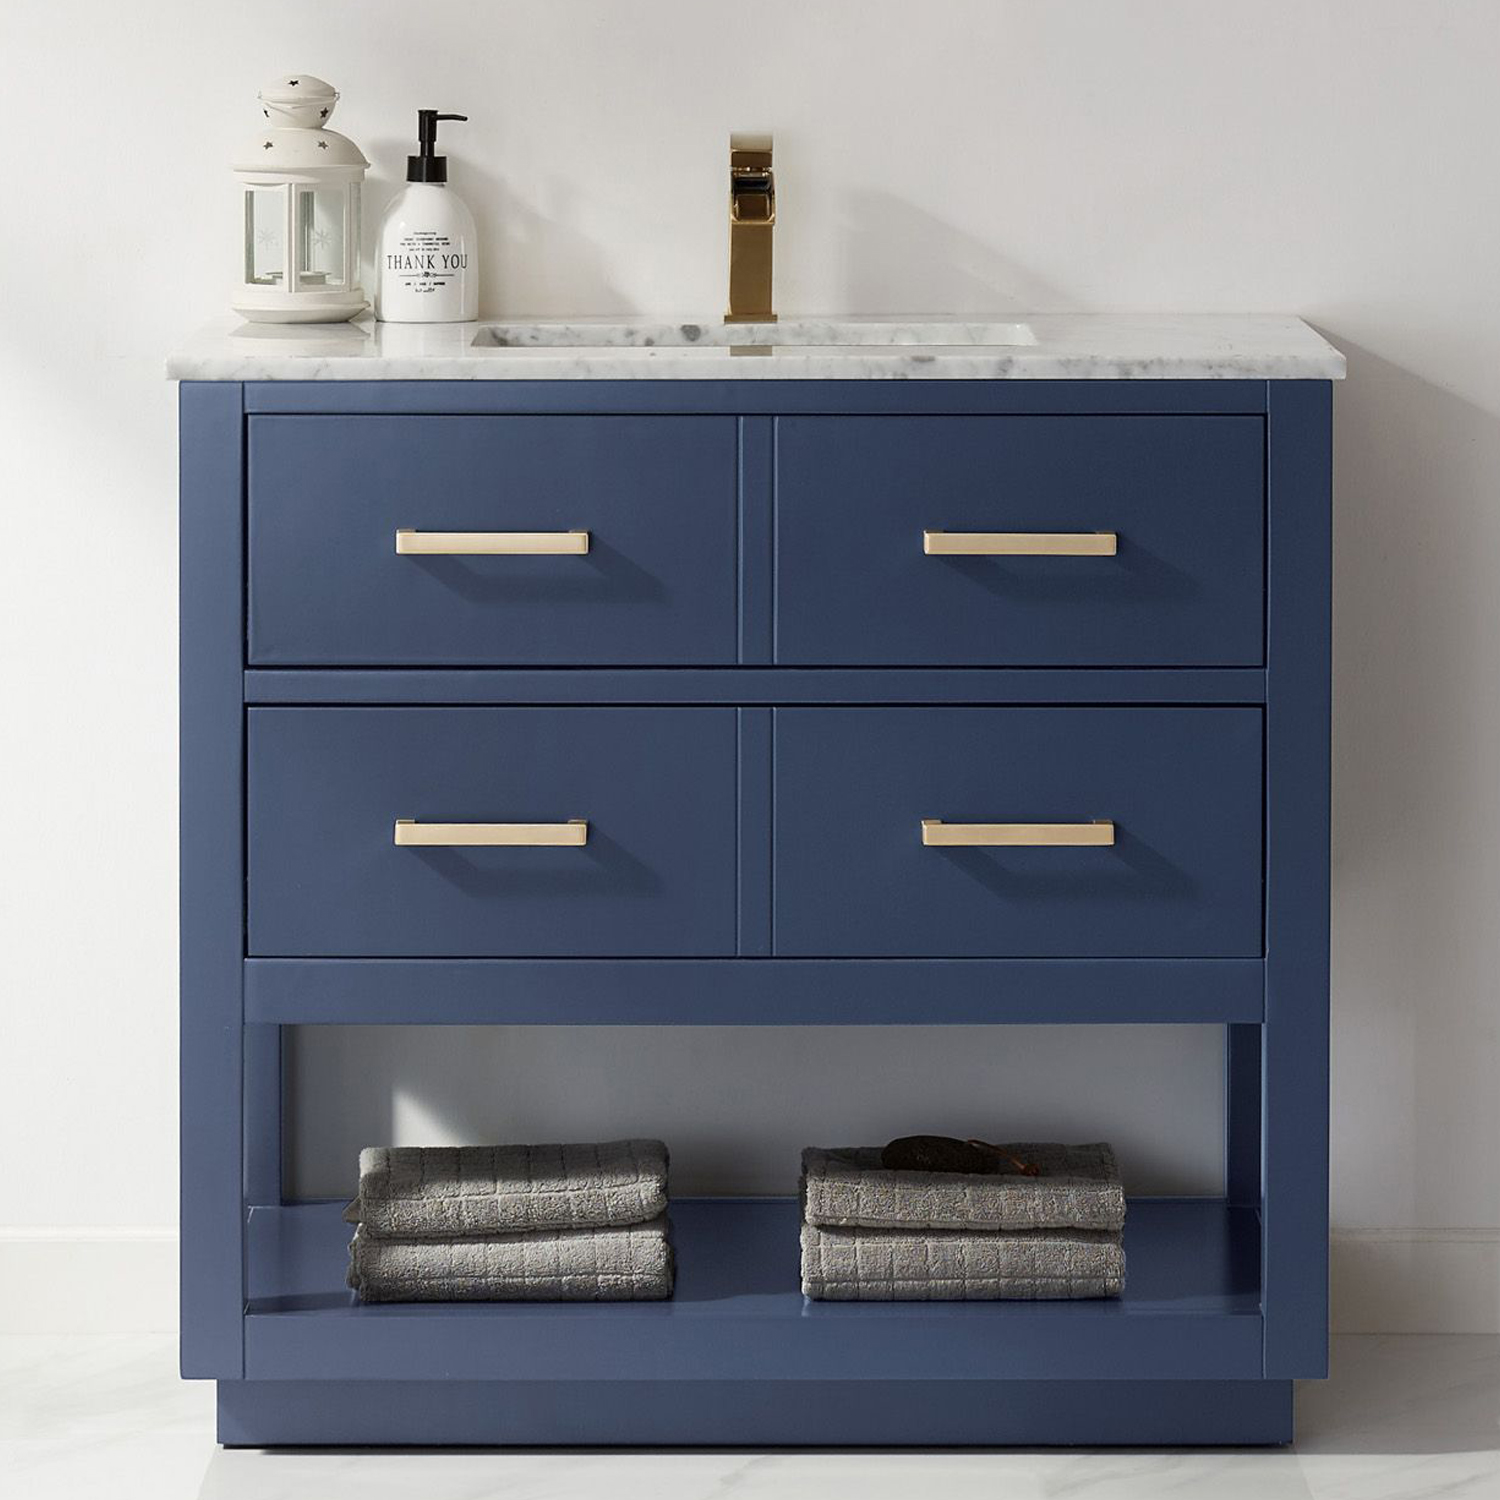 """Issac Edwards Collection 36"""" Single Bathroom Vanity Set in RoyalBlue and Carrara White Marble Countertop with Mirror Options"""